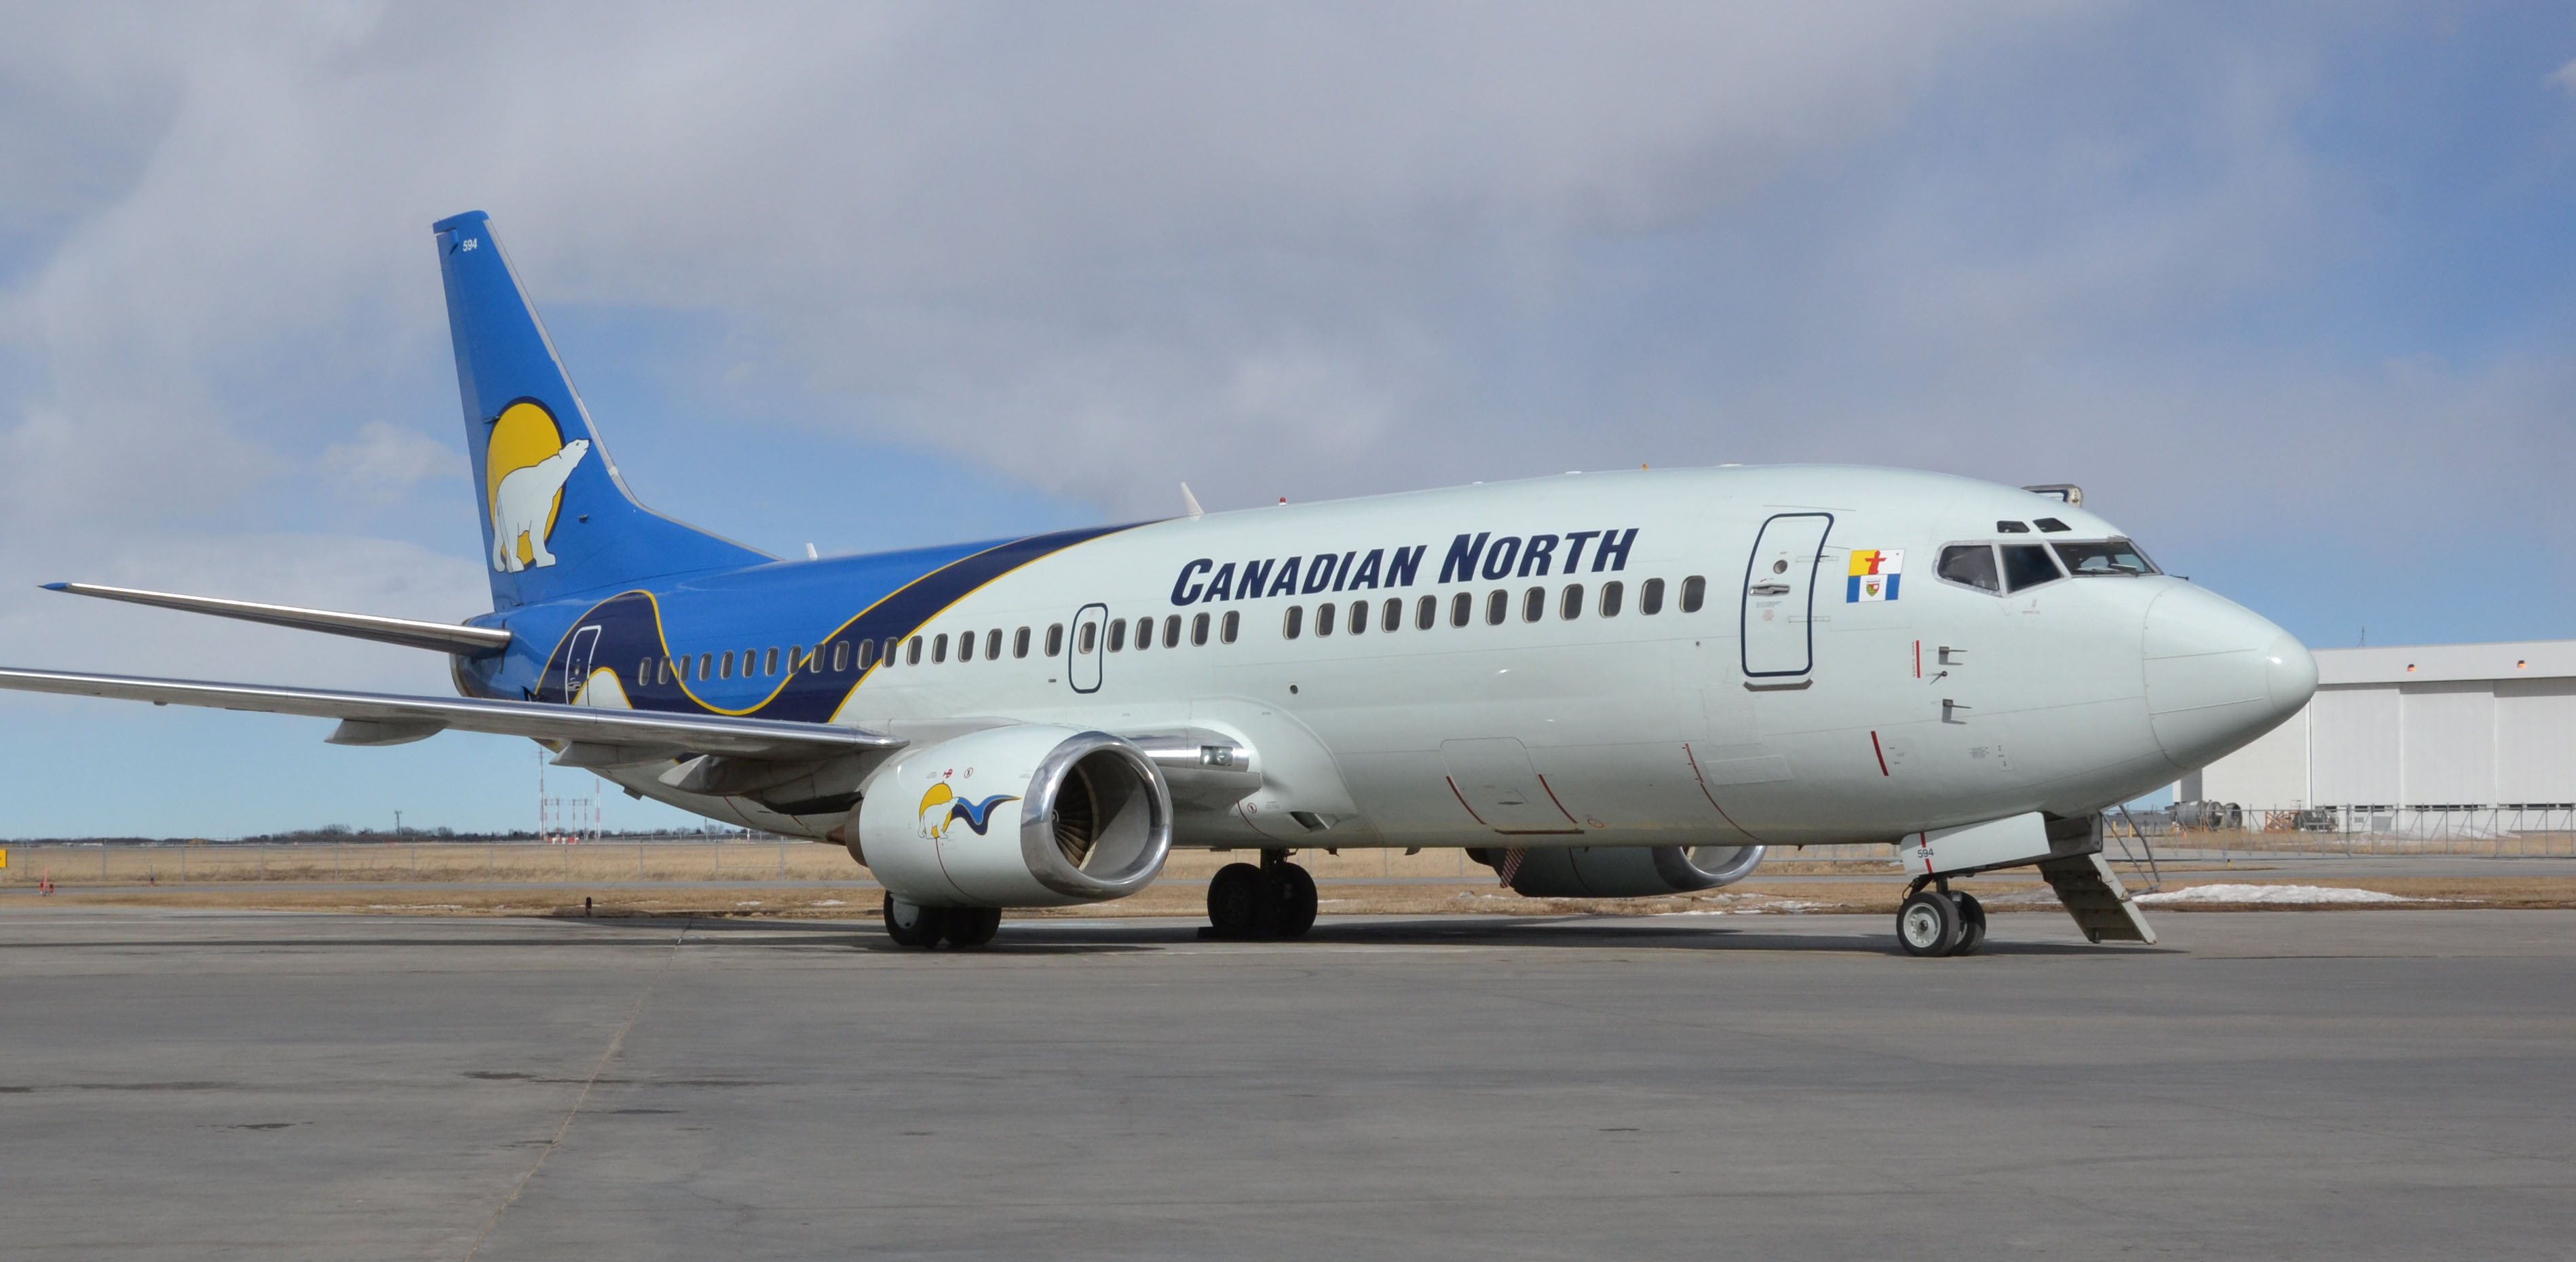 Canadian North, First Air announce codeshare